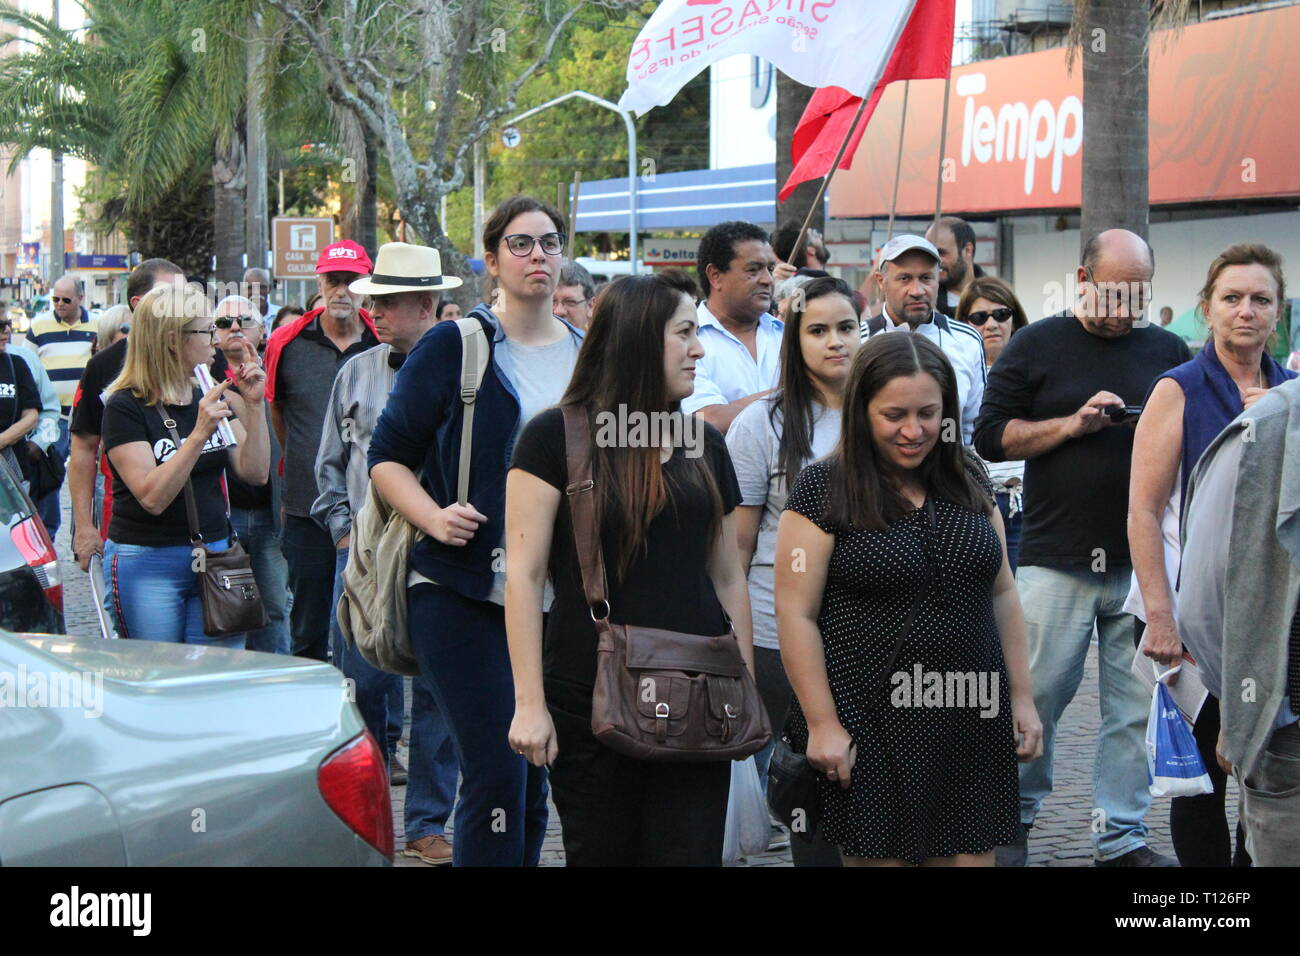 Brazilians march on the street in protest against social security reform - Stock Image